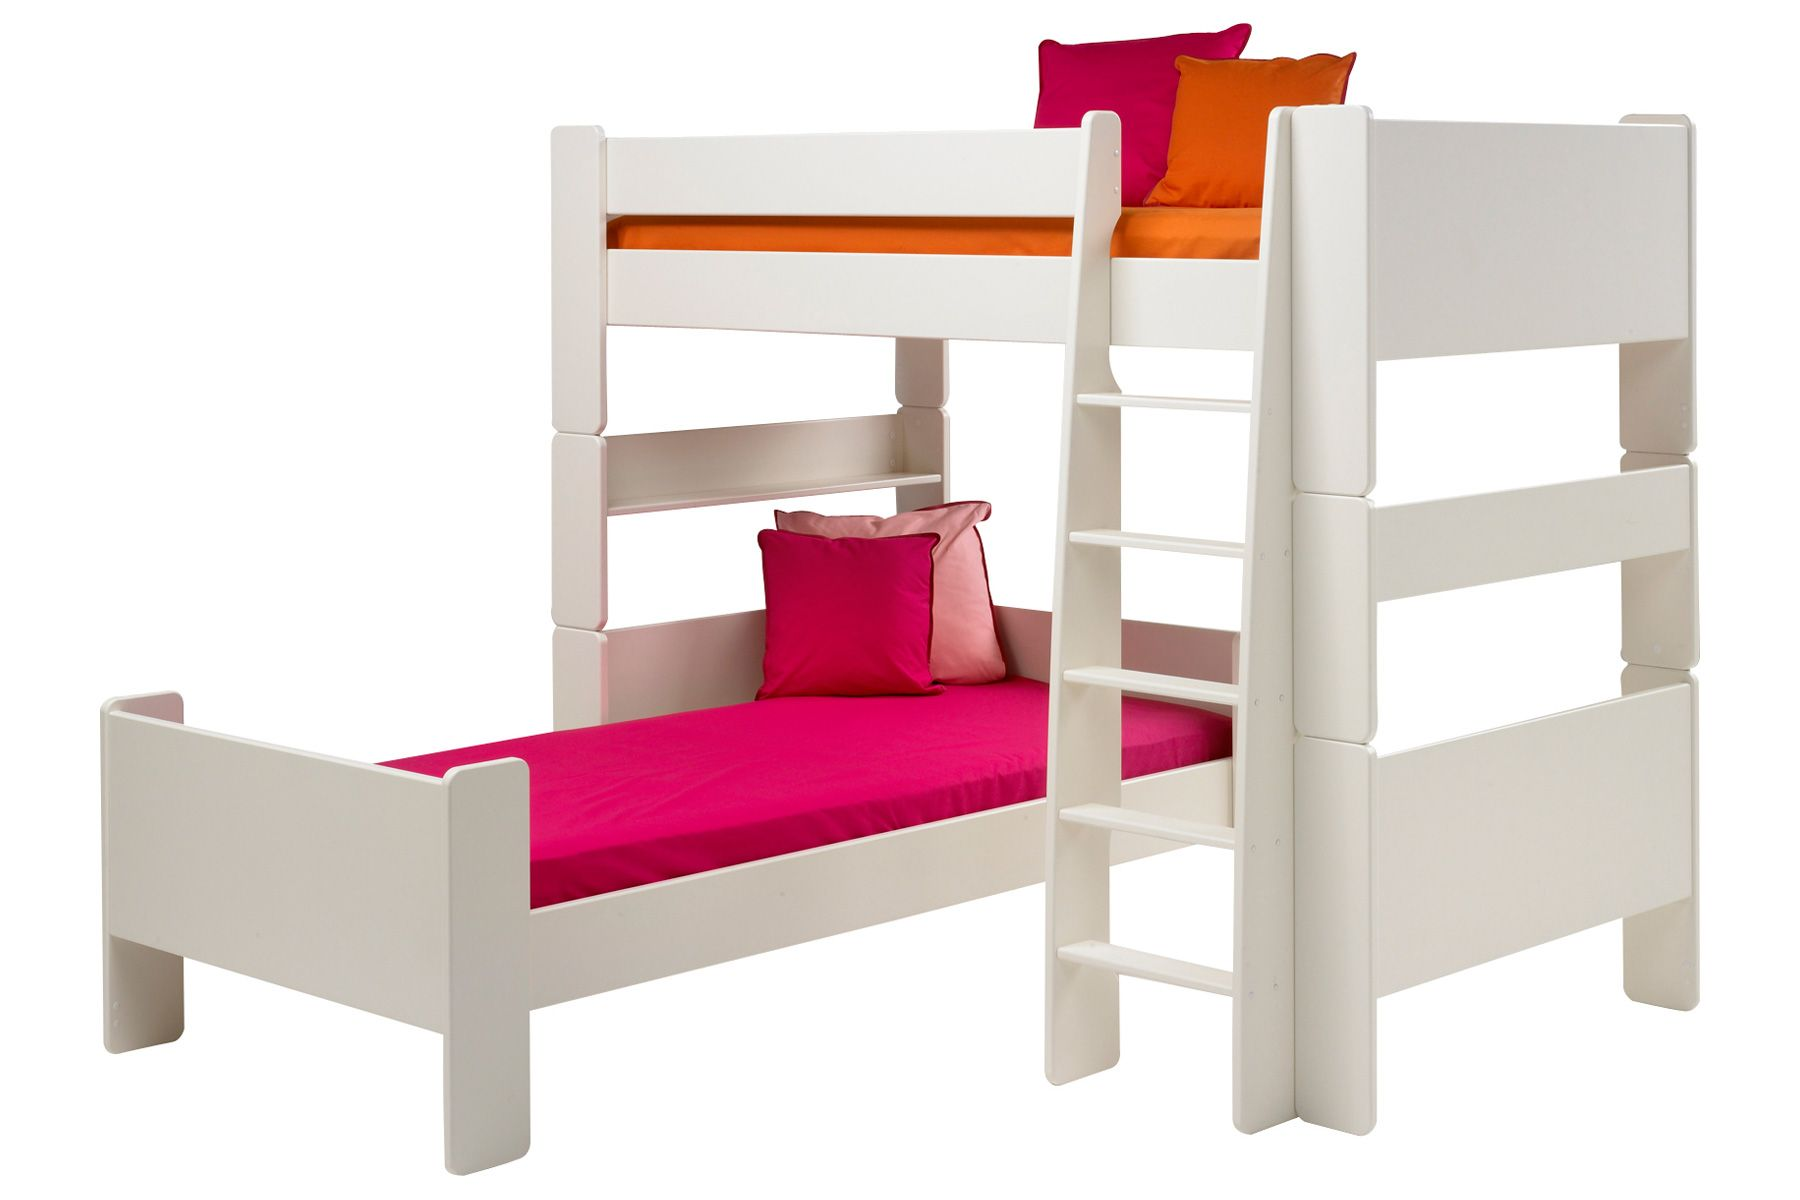 25 Interesting L Shaped Bunk Beds Design Ideas Youll Love